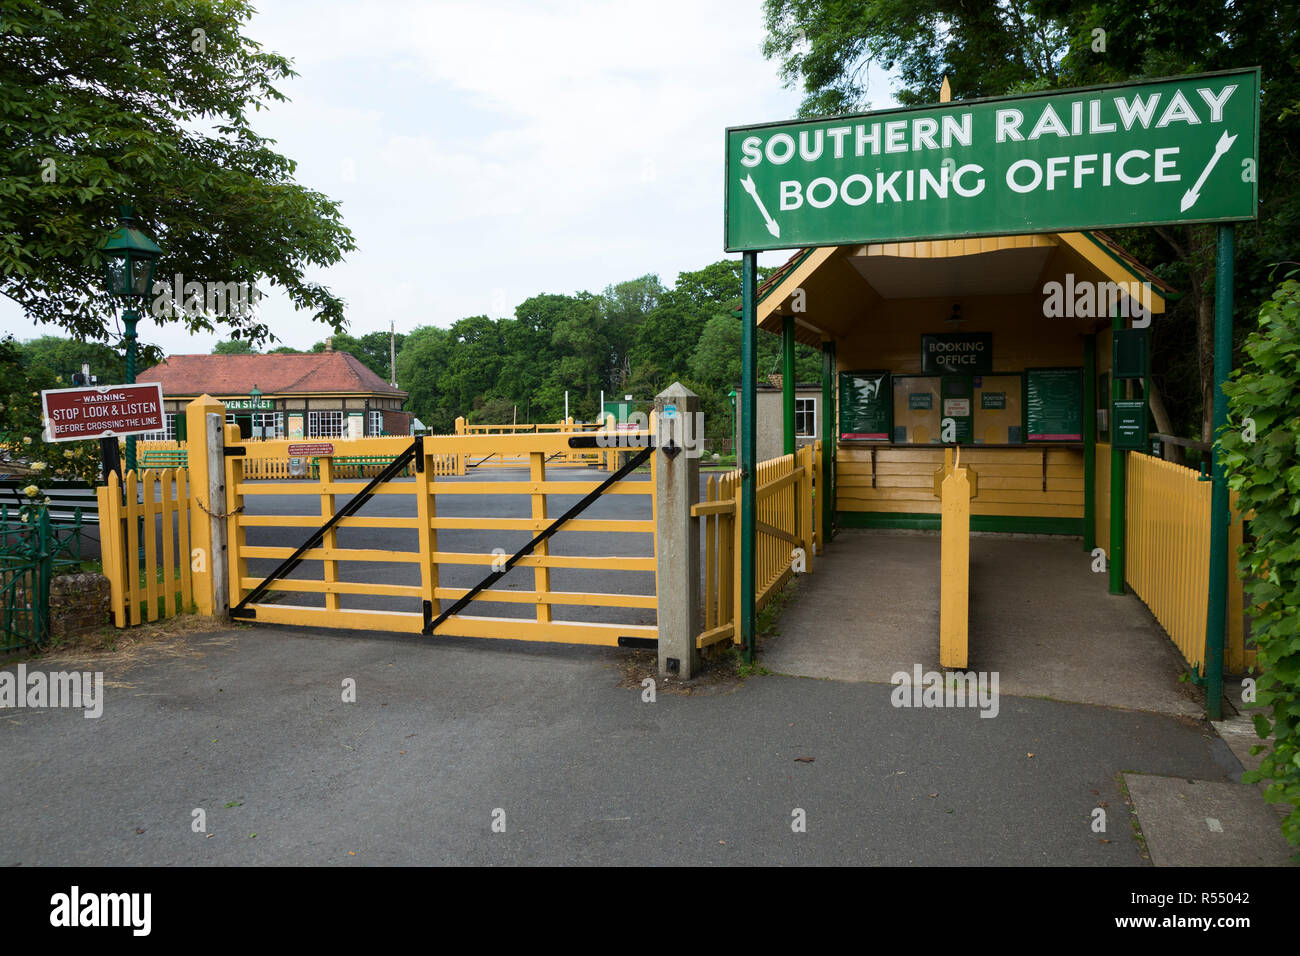 Booking office / ticket sales box / building & Southern Railway sign on the Isle of Wight steam Railway line. Station, Haven Street / Havenstreet, Ryde, UK. (98) - Stock Image